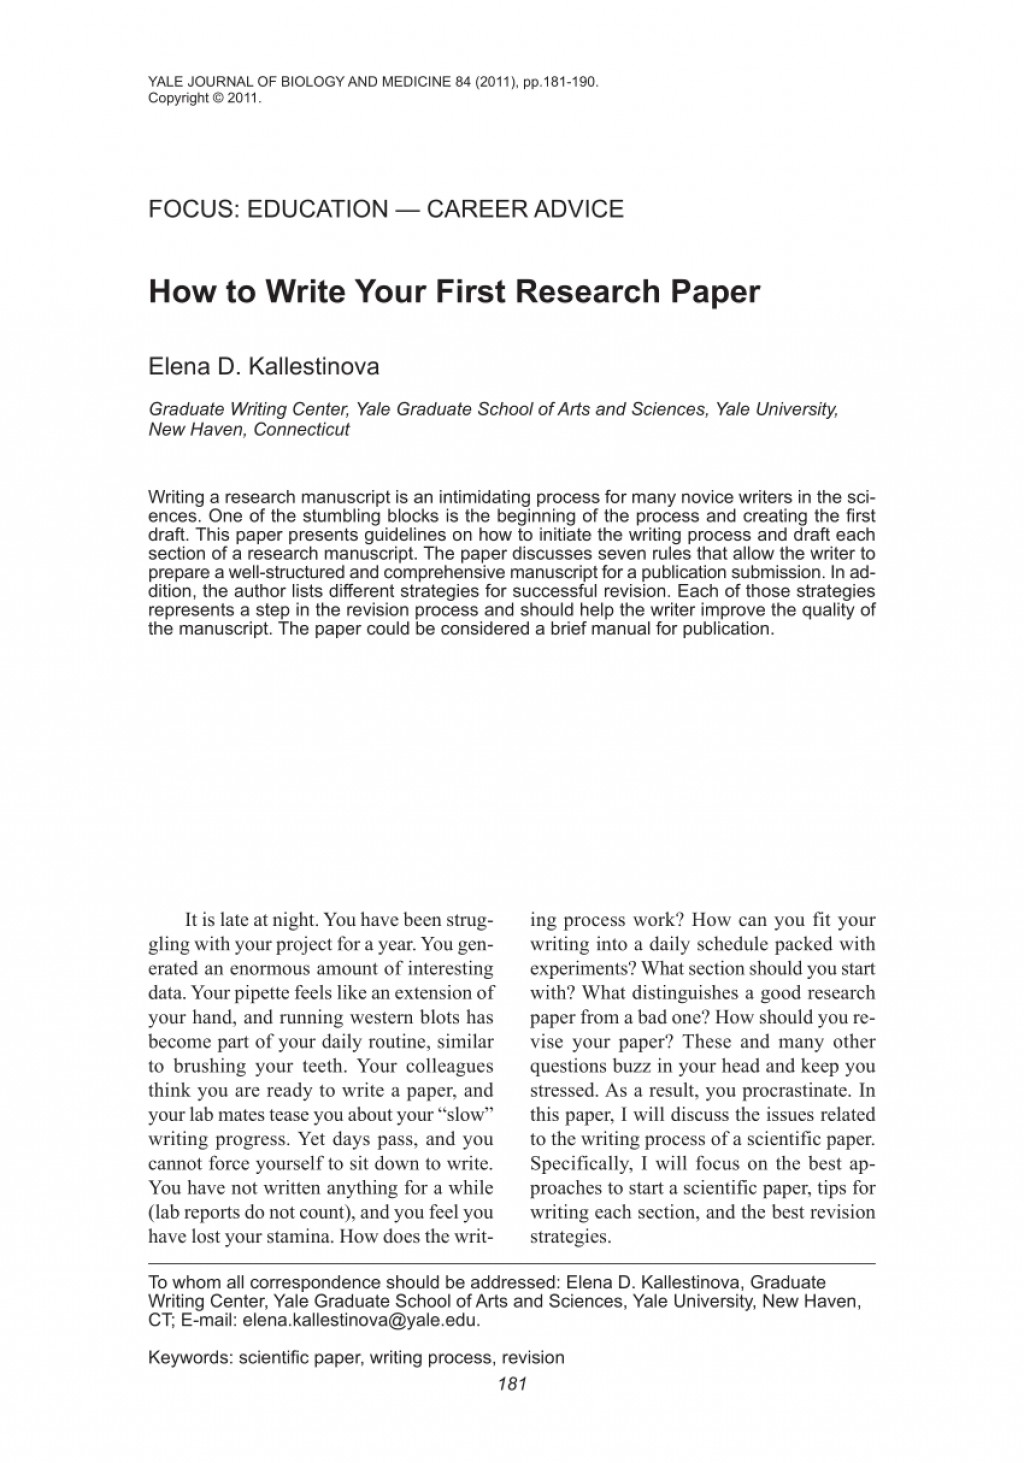 022 Research Paper About Writing Rare Essay On Process Topics For College Large